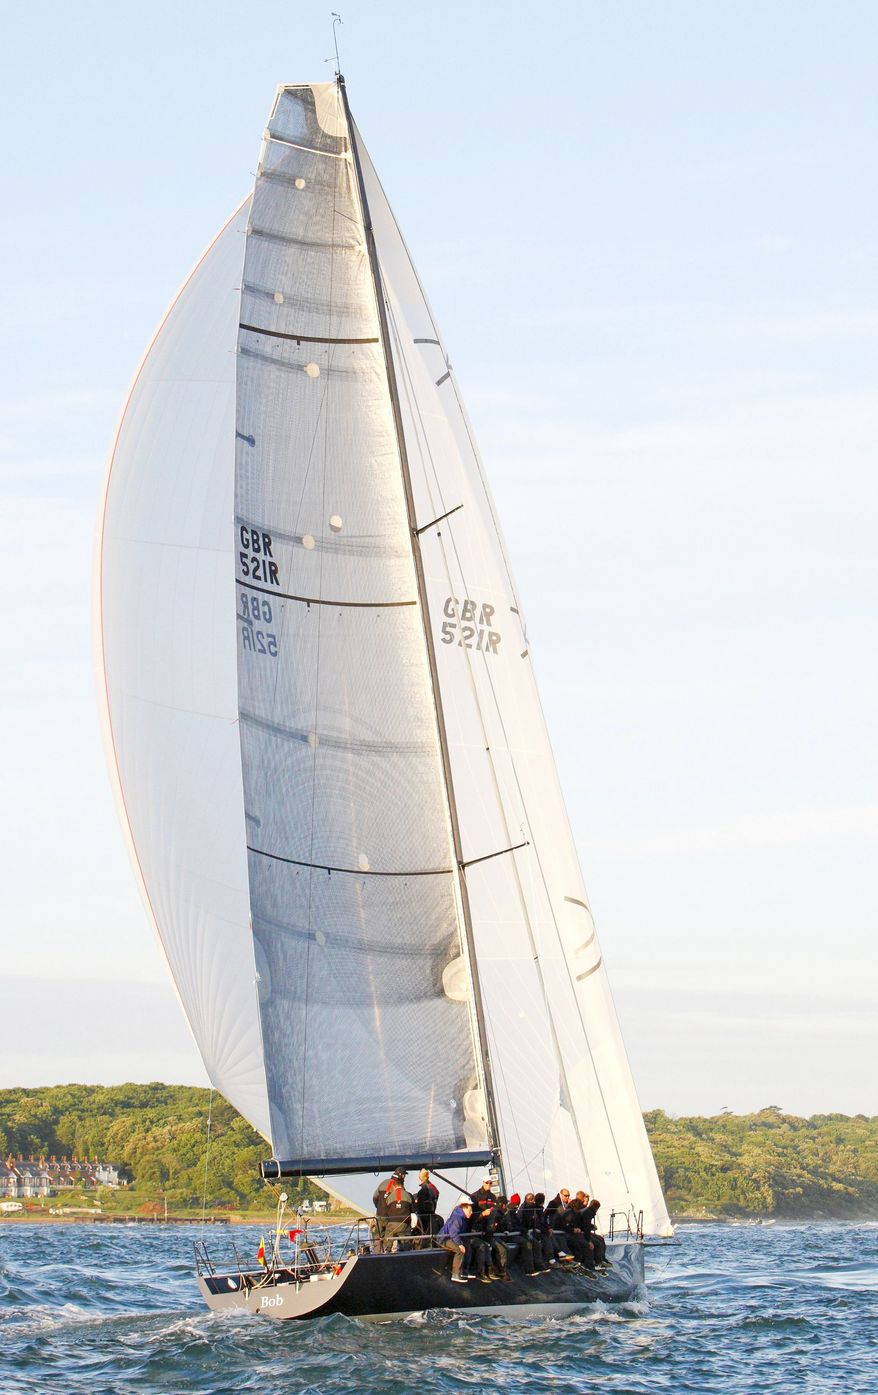 """The yacht """"Bob,"""" owned by BP Chief Executive Officer Tony Hayward, participates in the JP Morgan Asset Management Round the Island Race on Saturday off the south coast of England. Mr. Hayward took time off from handling the oil spill in the Gulf of Mexico to see his boat participate, a respite that infuriated some Americans. (Associated Press)"""